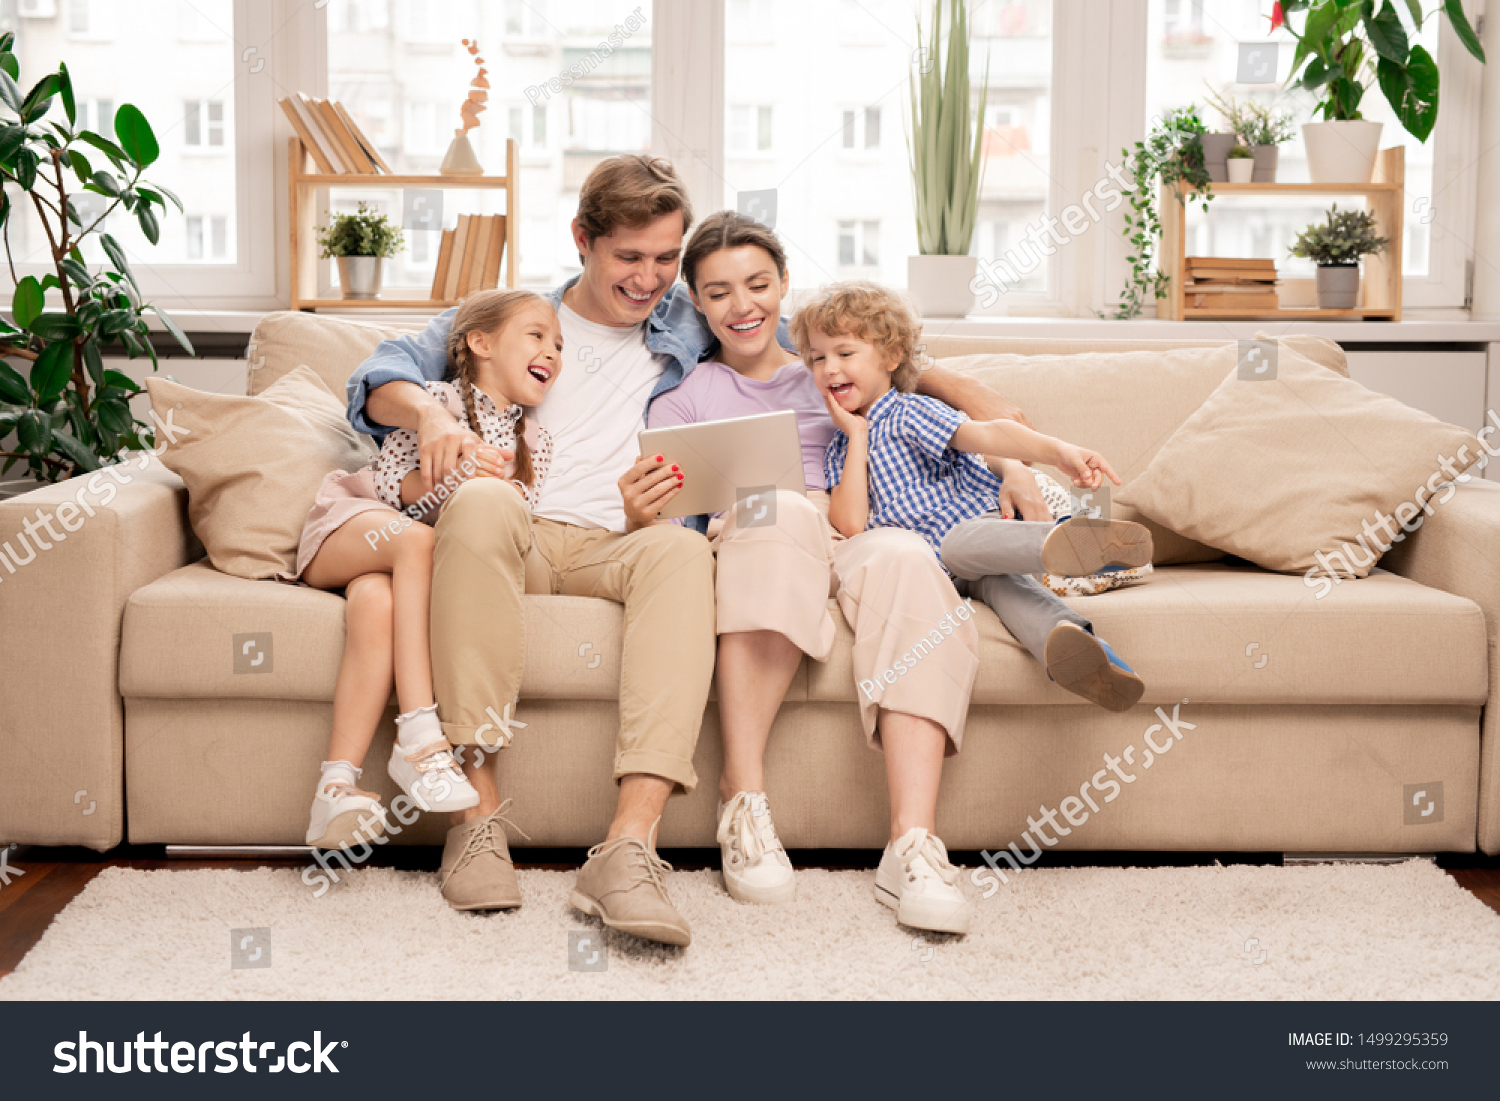 Young joyful casual family of two kids and couple sitting on sofa and watching funny video or cartoons in touchpad #1499295359